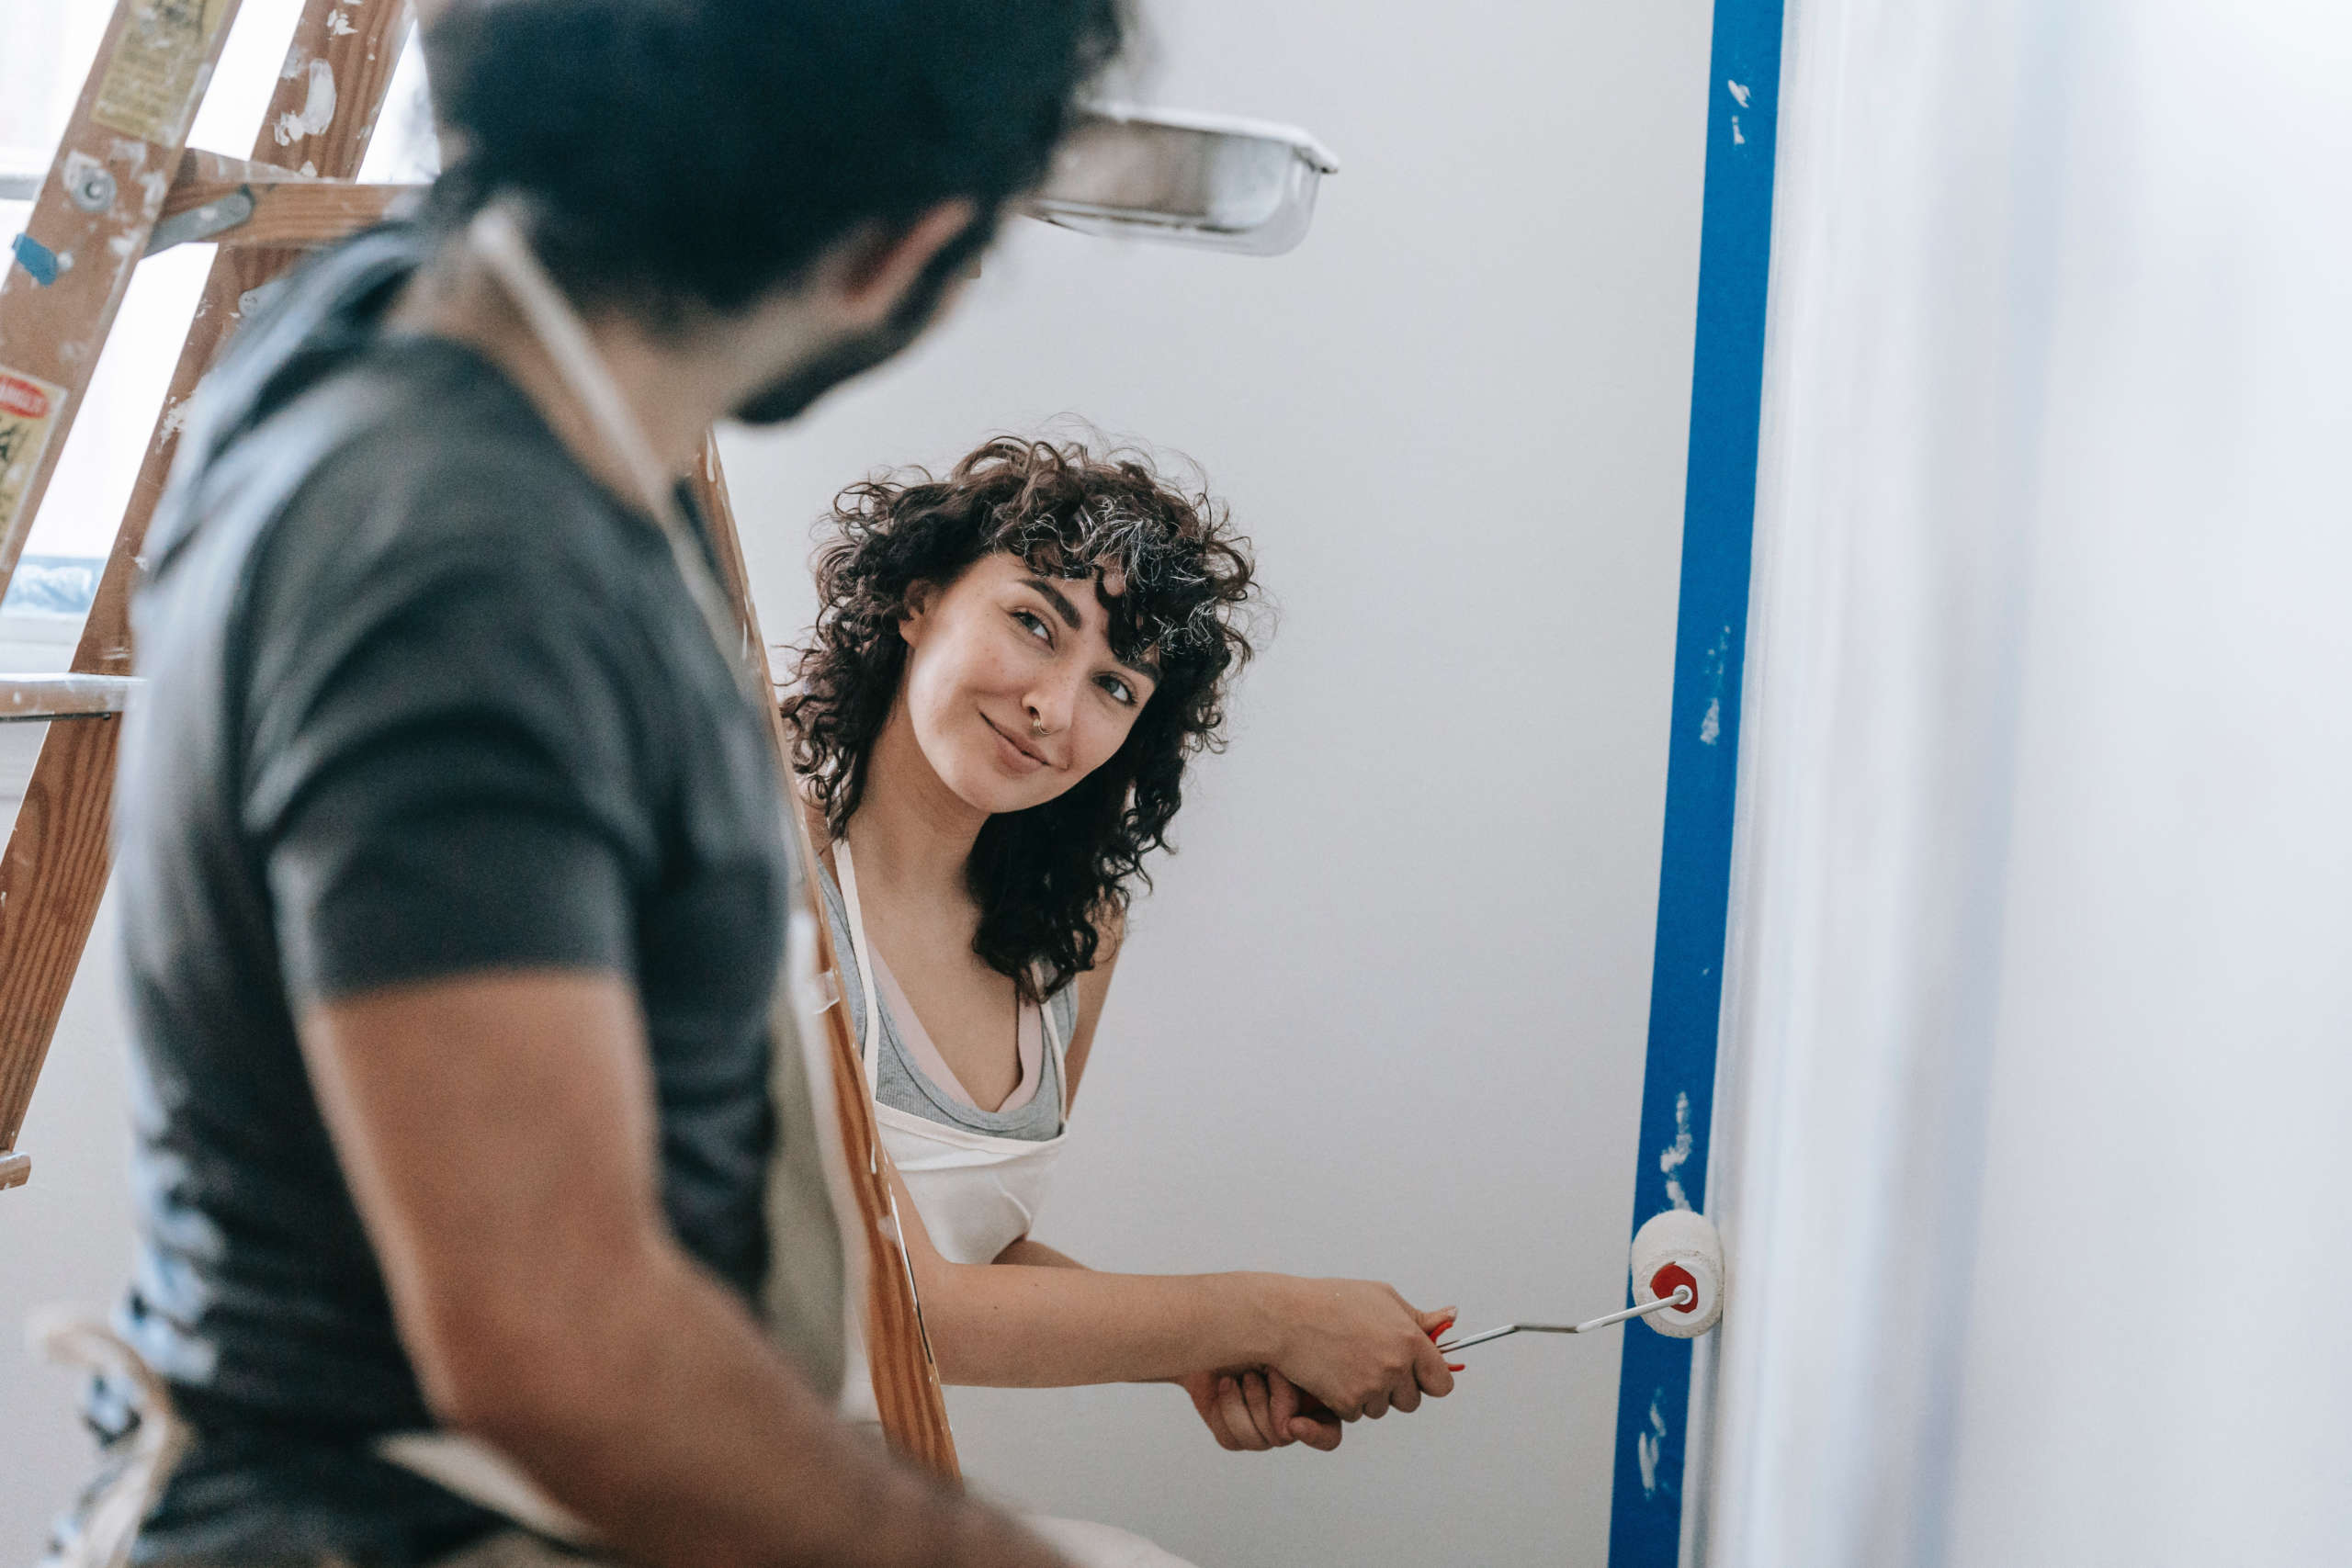 5 Ways To Increase the Value of Your Home While Renovating For Your Family